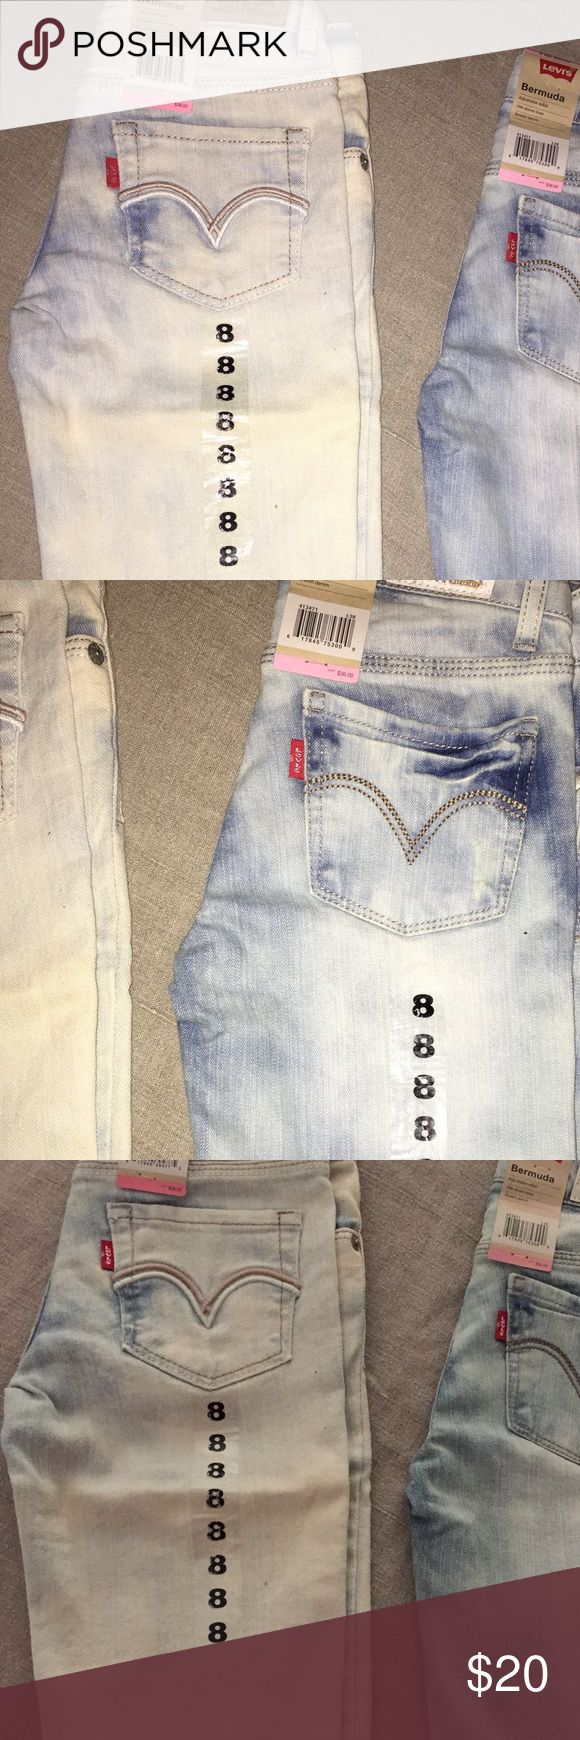 Levi's Bermuda Skimmer Shorts Girls Sz 8 Levi's Bermuda Skimmer Shorts Girls Sz 8 - Two shorts are available. One light colored. One a little darker in color. Brand new, tags attached. Price listed is for one short. If you are interested in both, I'm willing to negotiate. Levi's Bottoms Shorts